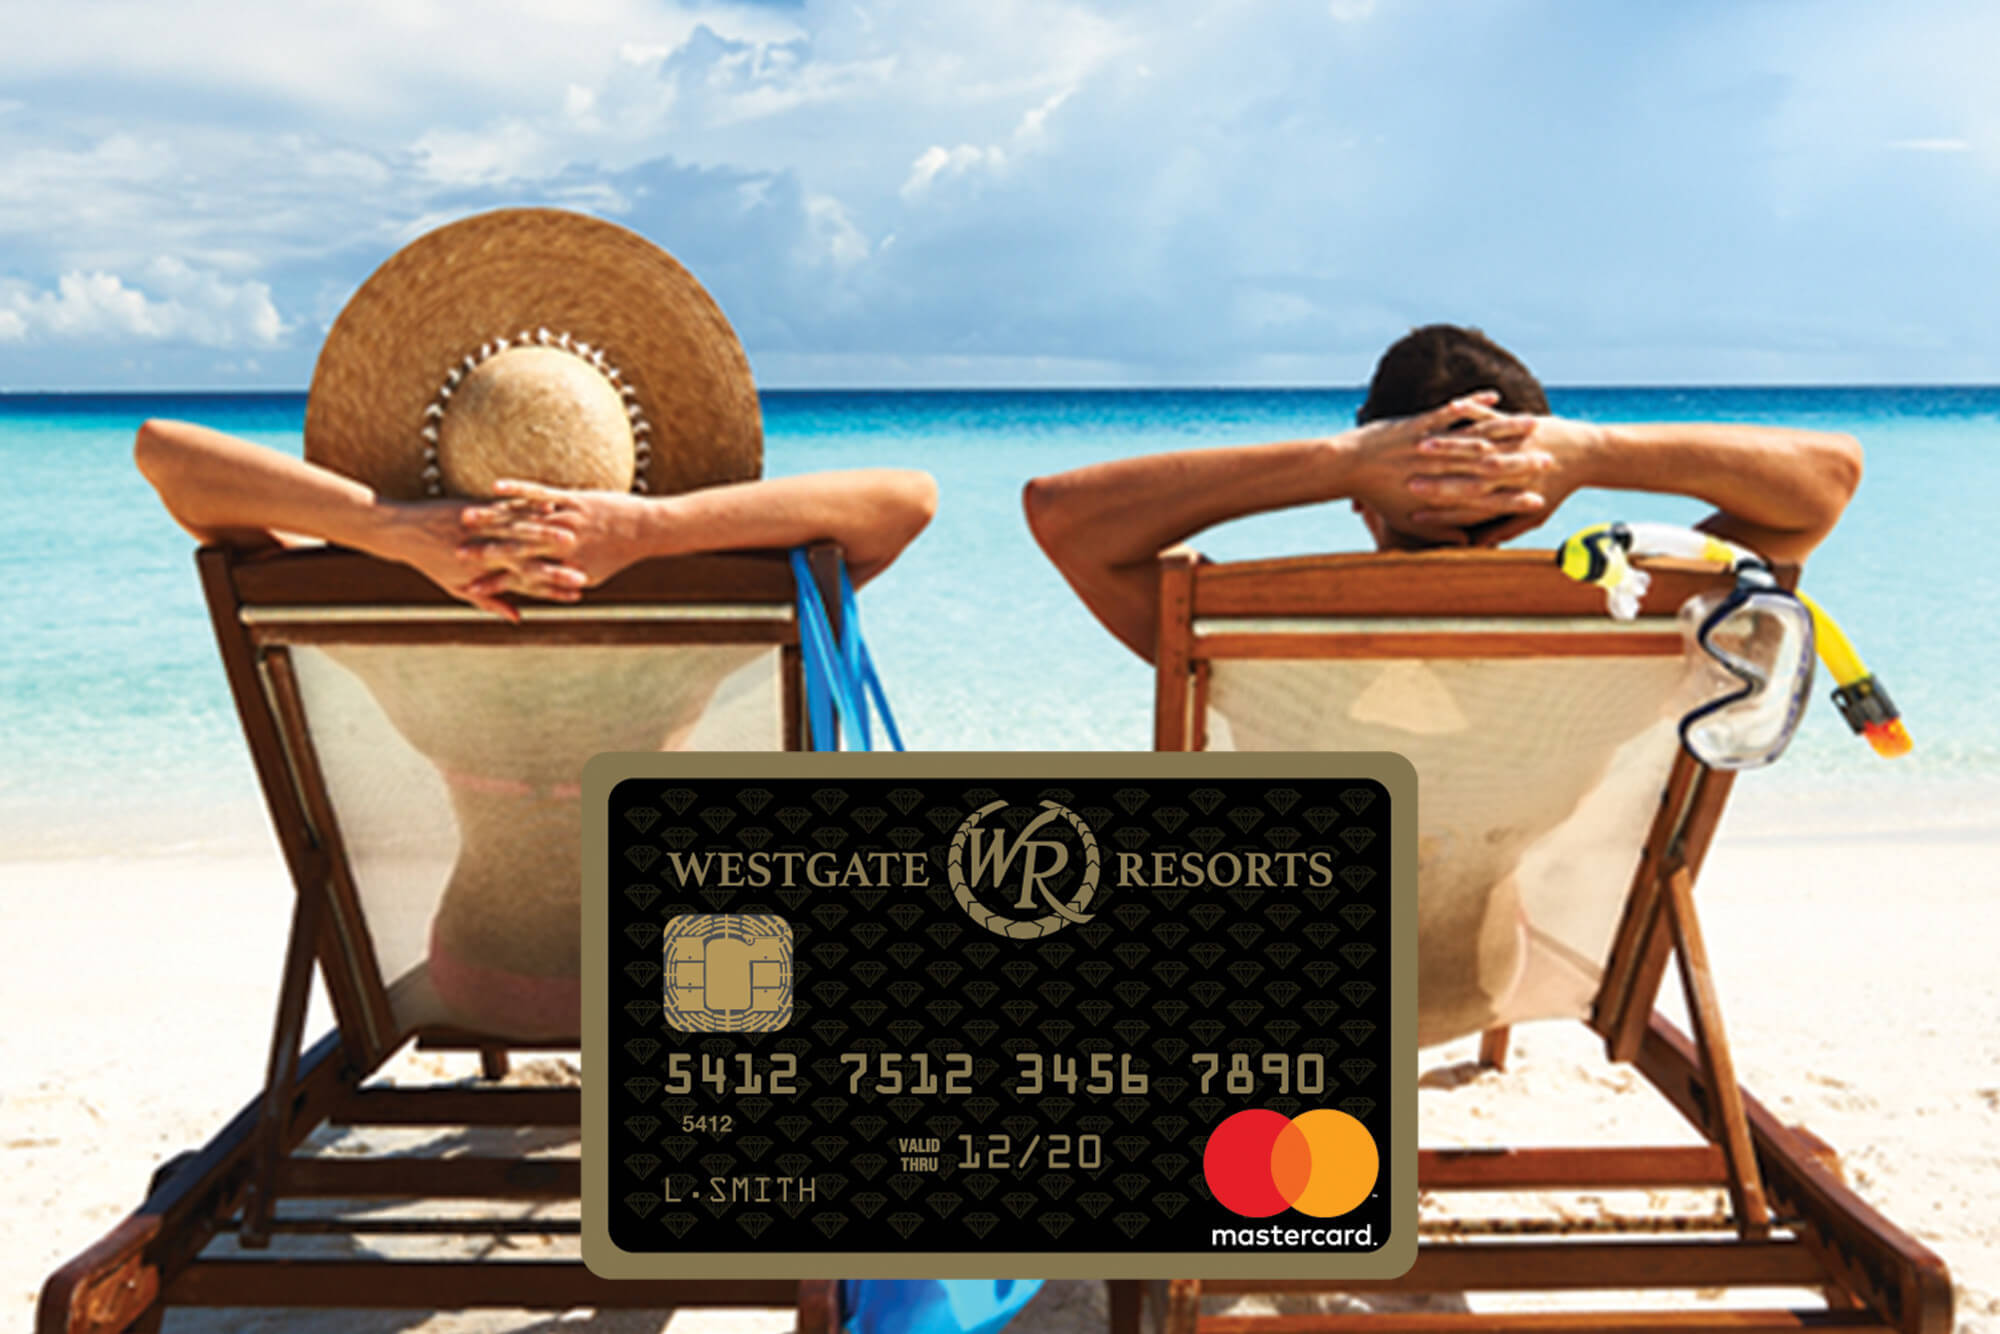 Couple on Beach with a Westgate Resorts Mastercard Image | Westgate Resorts